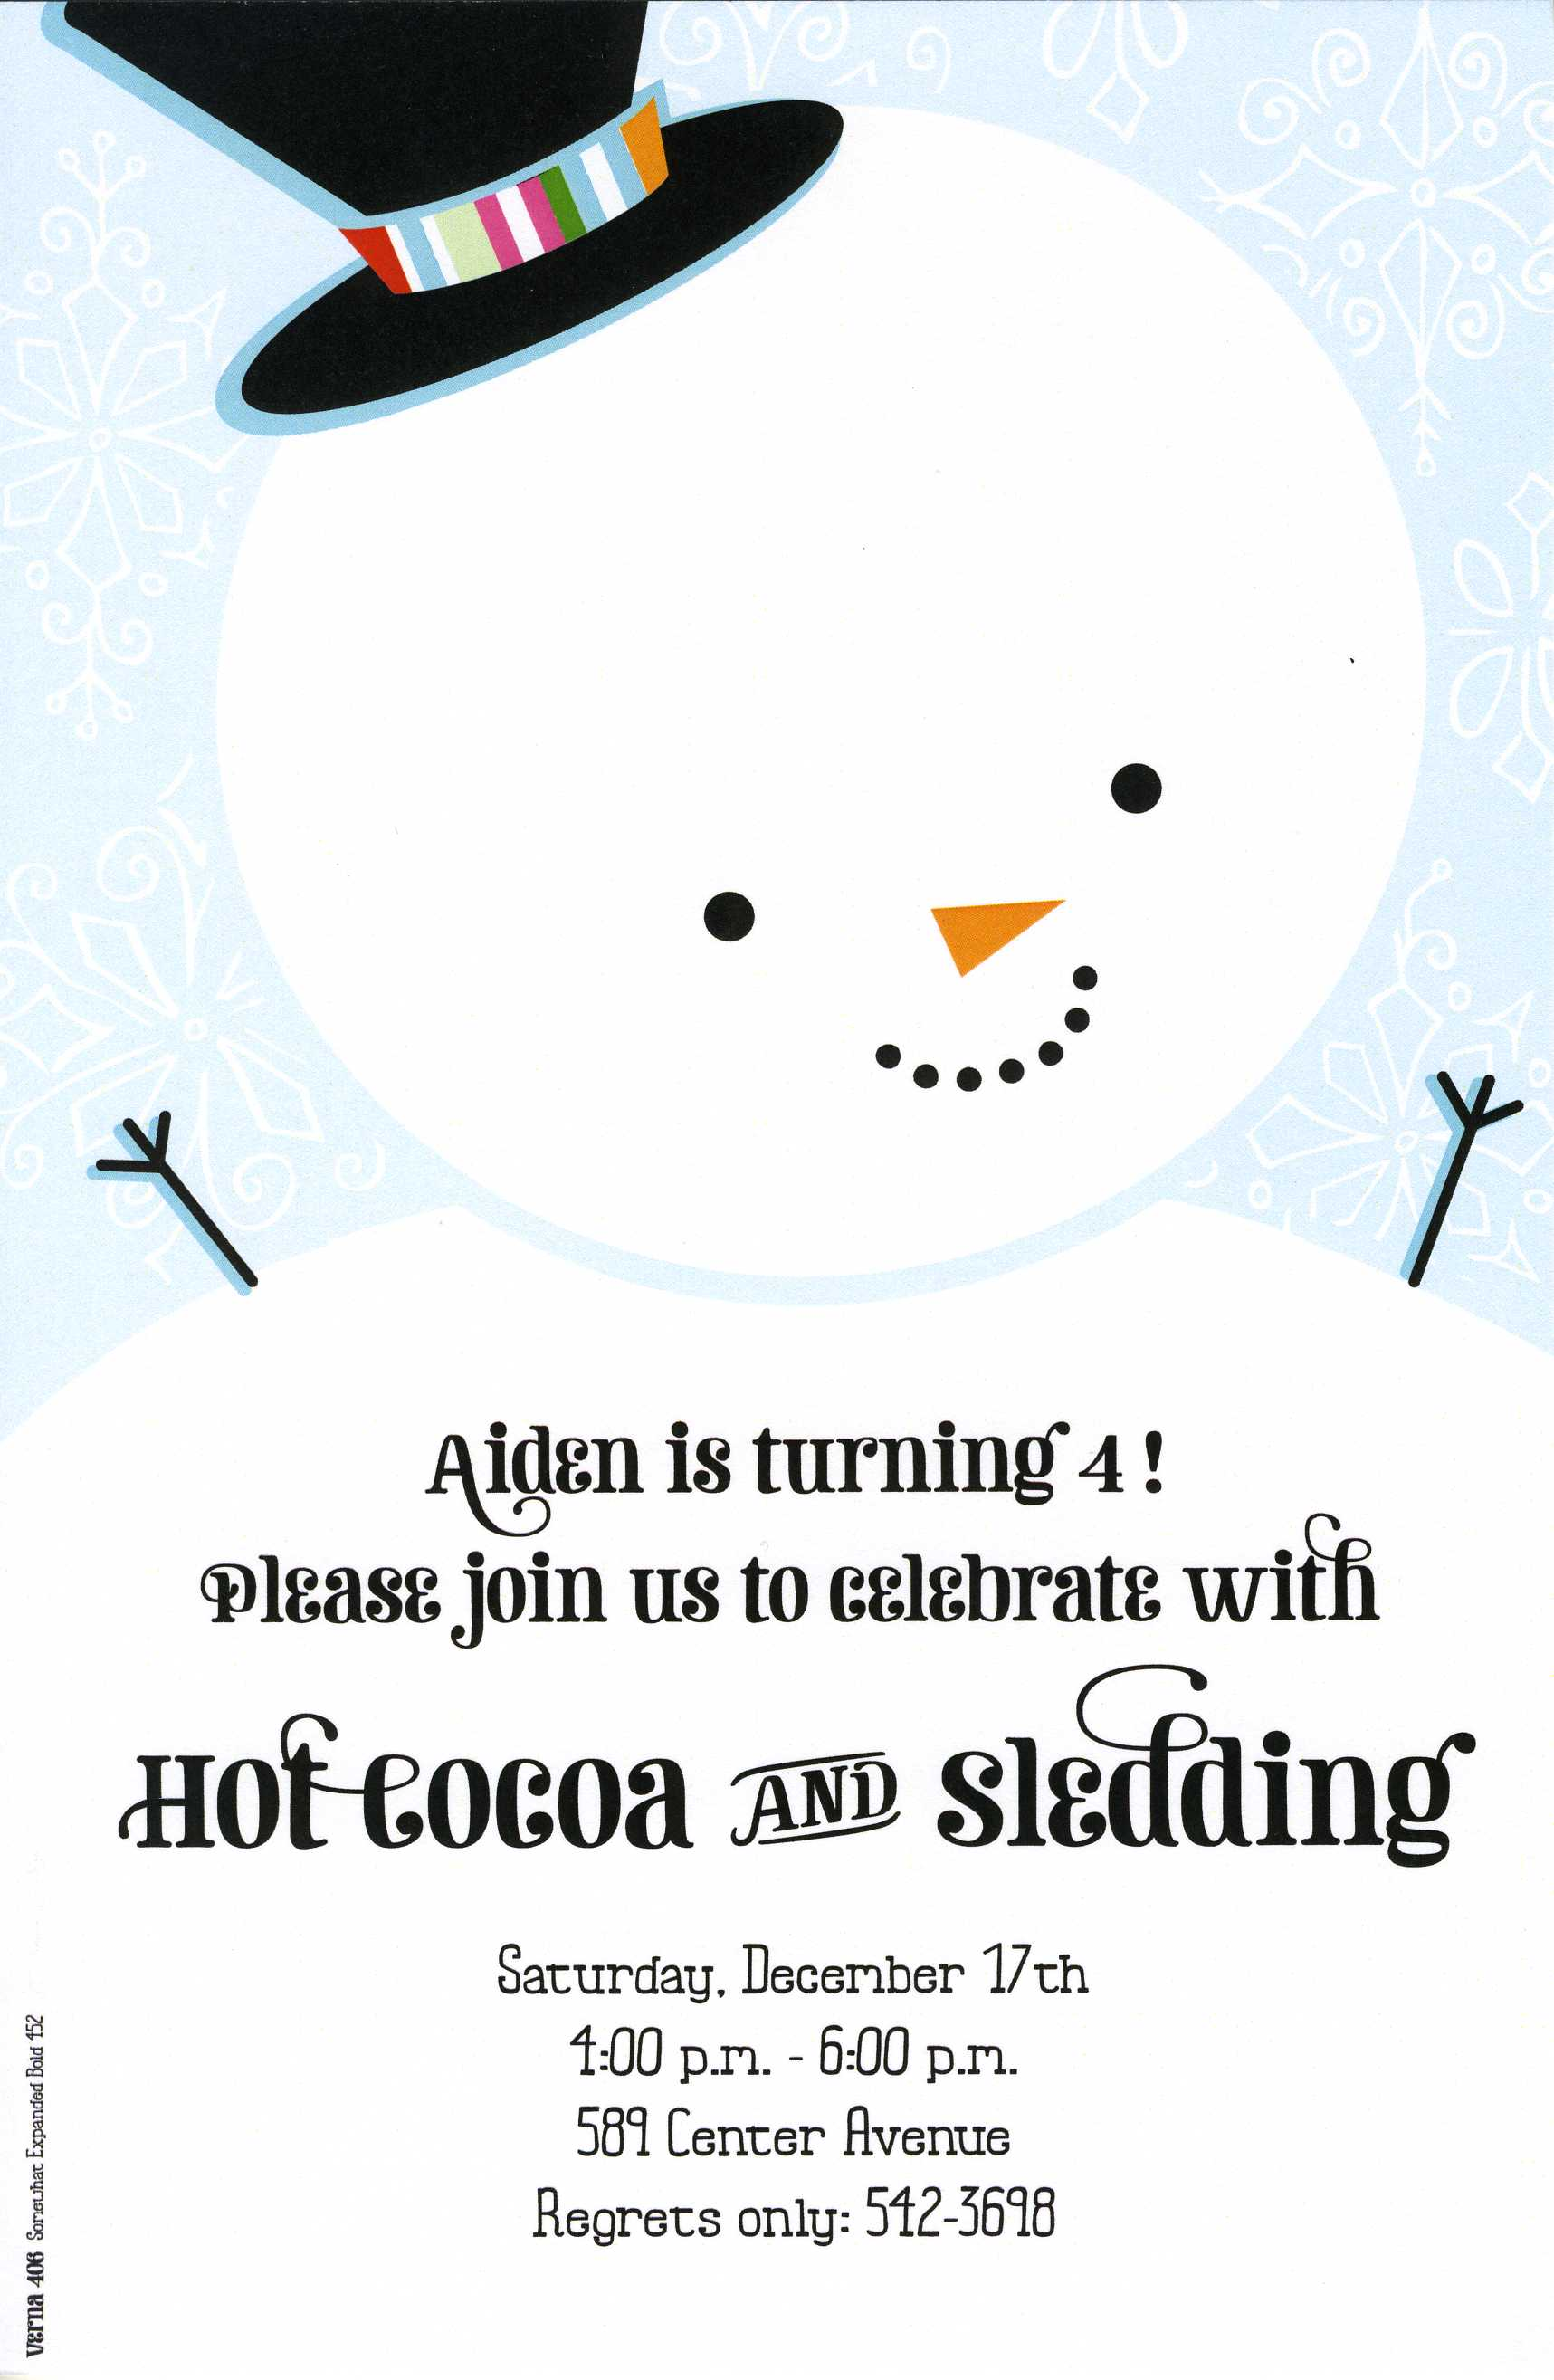 Let It Snowman - The adorable invitation featuers a large white snowman smiling broadly against a pale blue background with falling snowflakes.  The colorful band on his top hat adds a special touch! Perfect for your holiday time gathering! Includes white envelope.